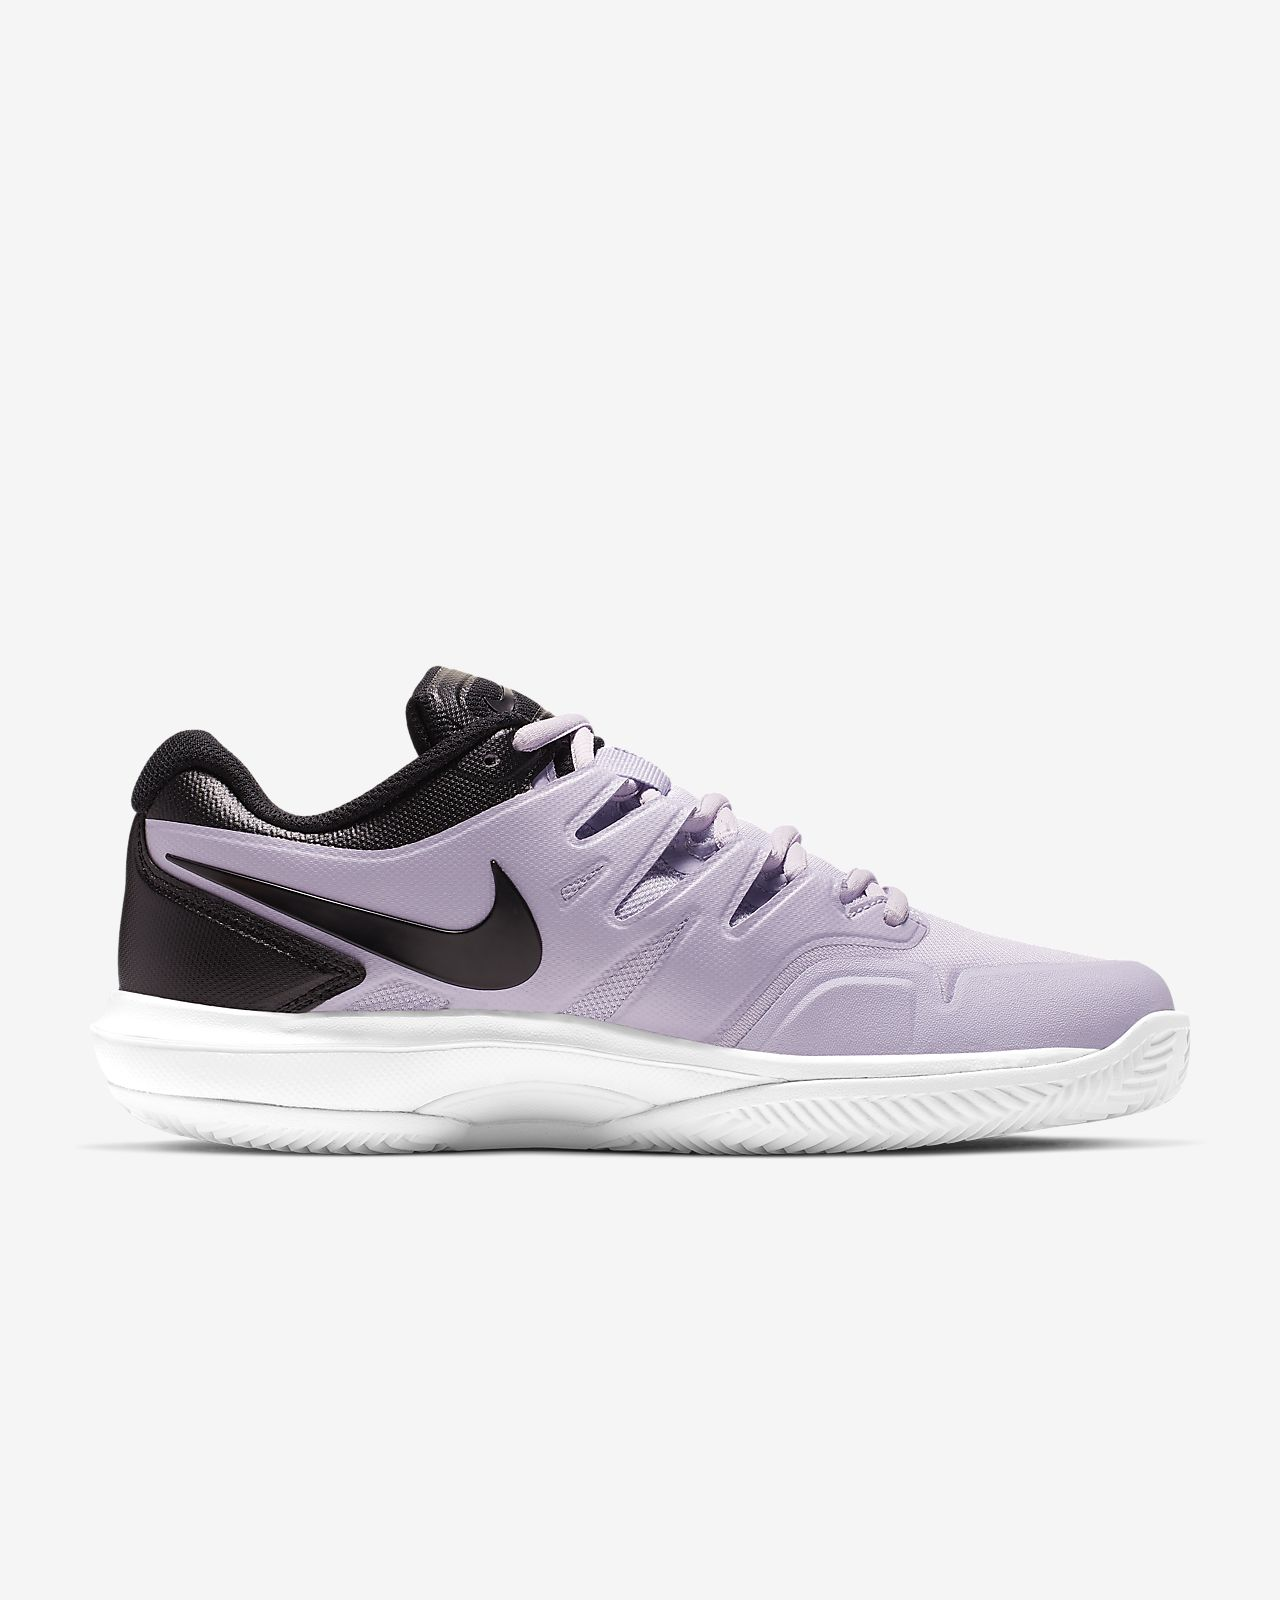 8d625a8cdb85 NikeCourt Air Zoom Prestige Women s Hard Court Tennis Shoe. Nike.com